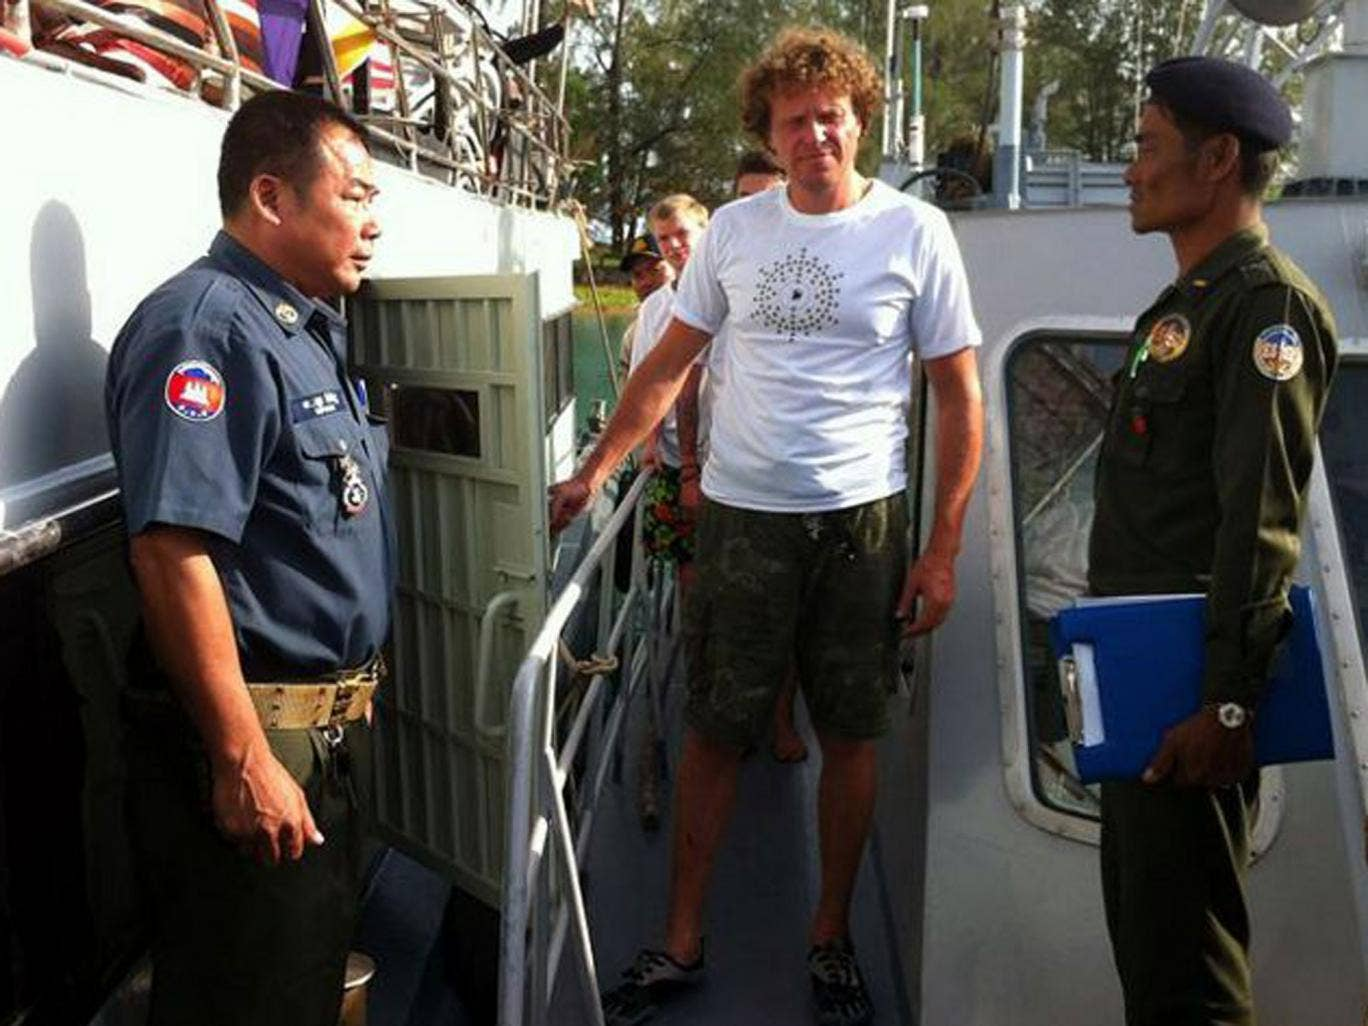 Sergei Polonsky (centre) is led away by Cambodian officials